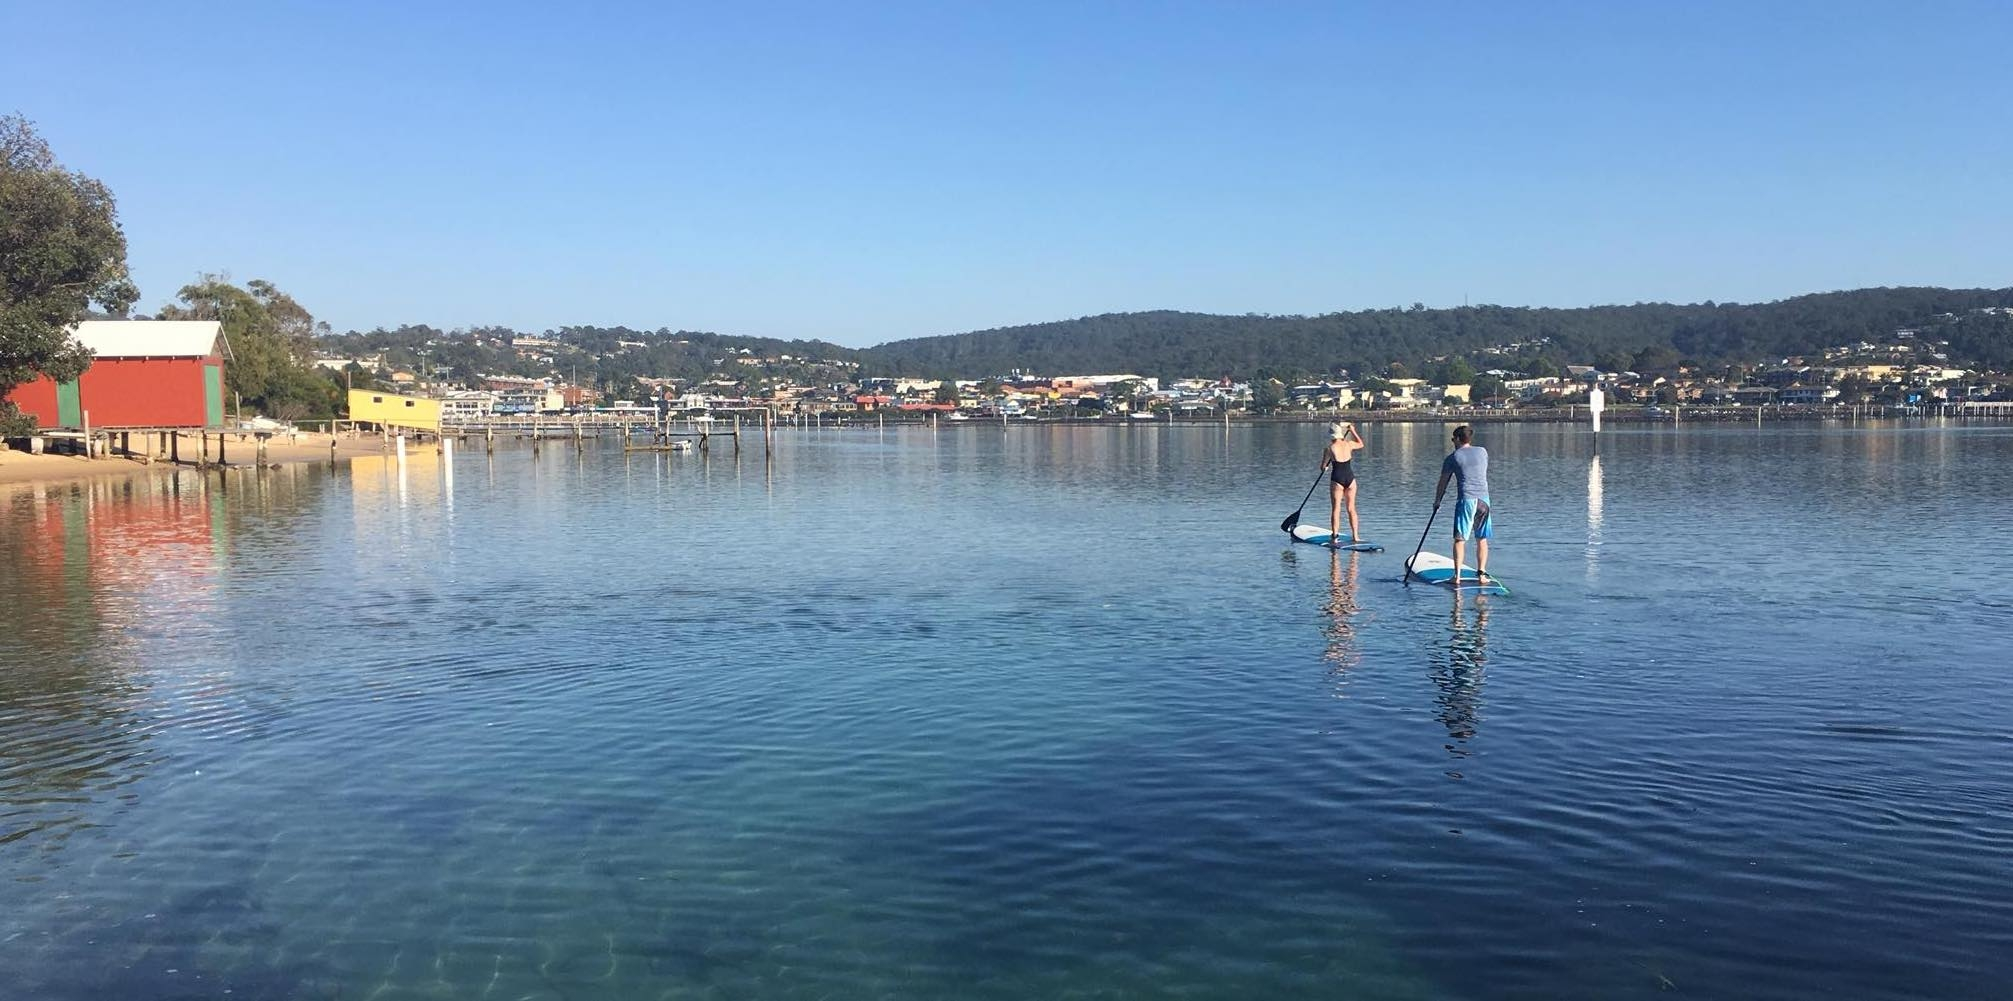 SUP Hire at Mitchies Jetty, Merimbula